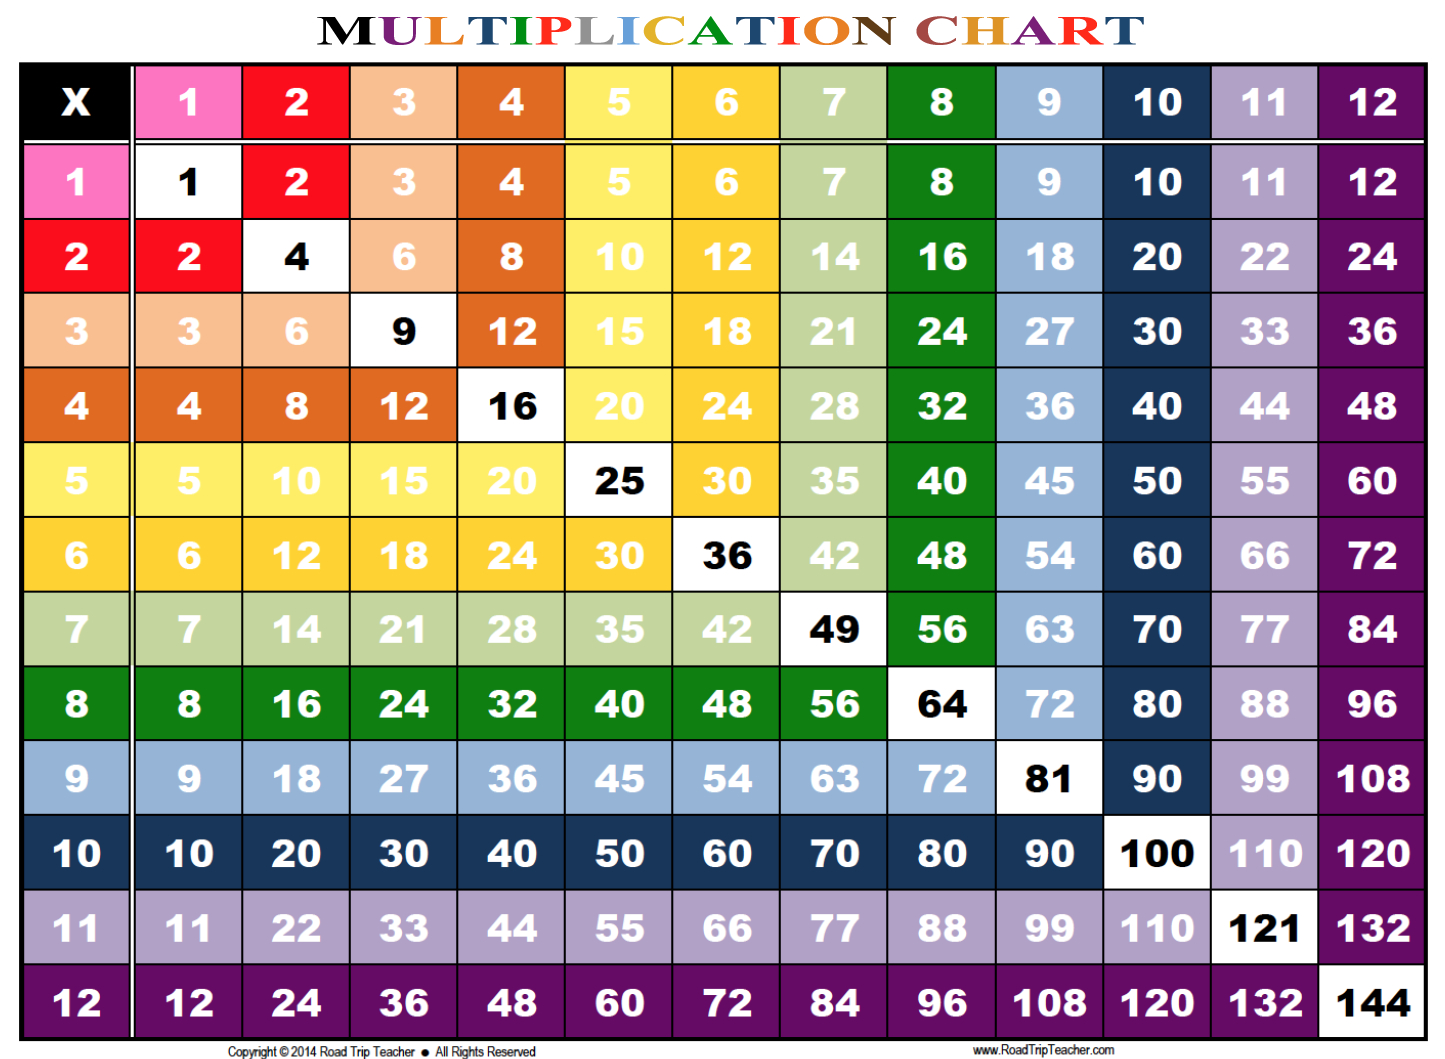 Rainbow Multiplication Chart - Family Educational Resources   Road - Free Printable Multiplication Chart